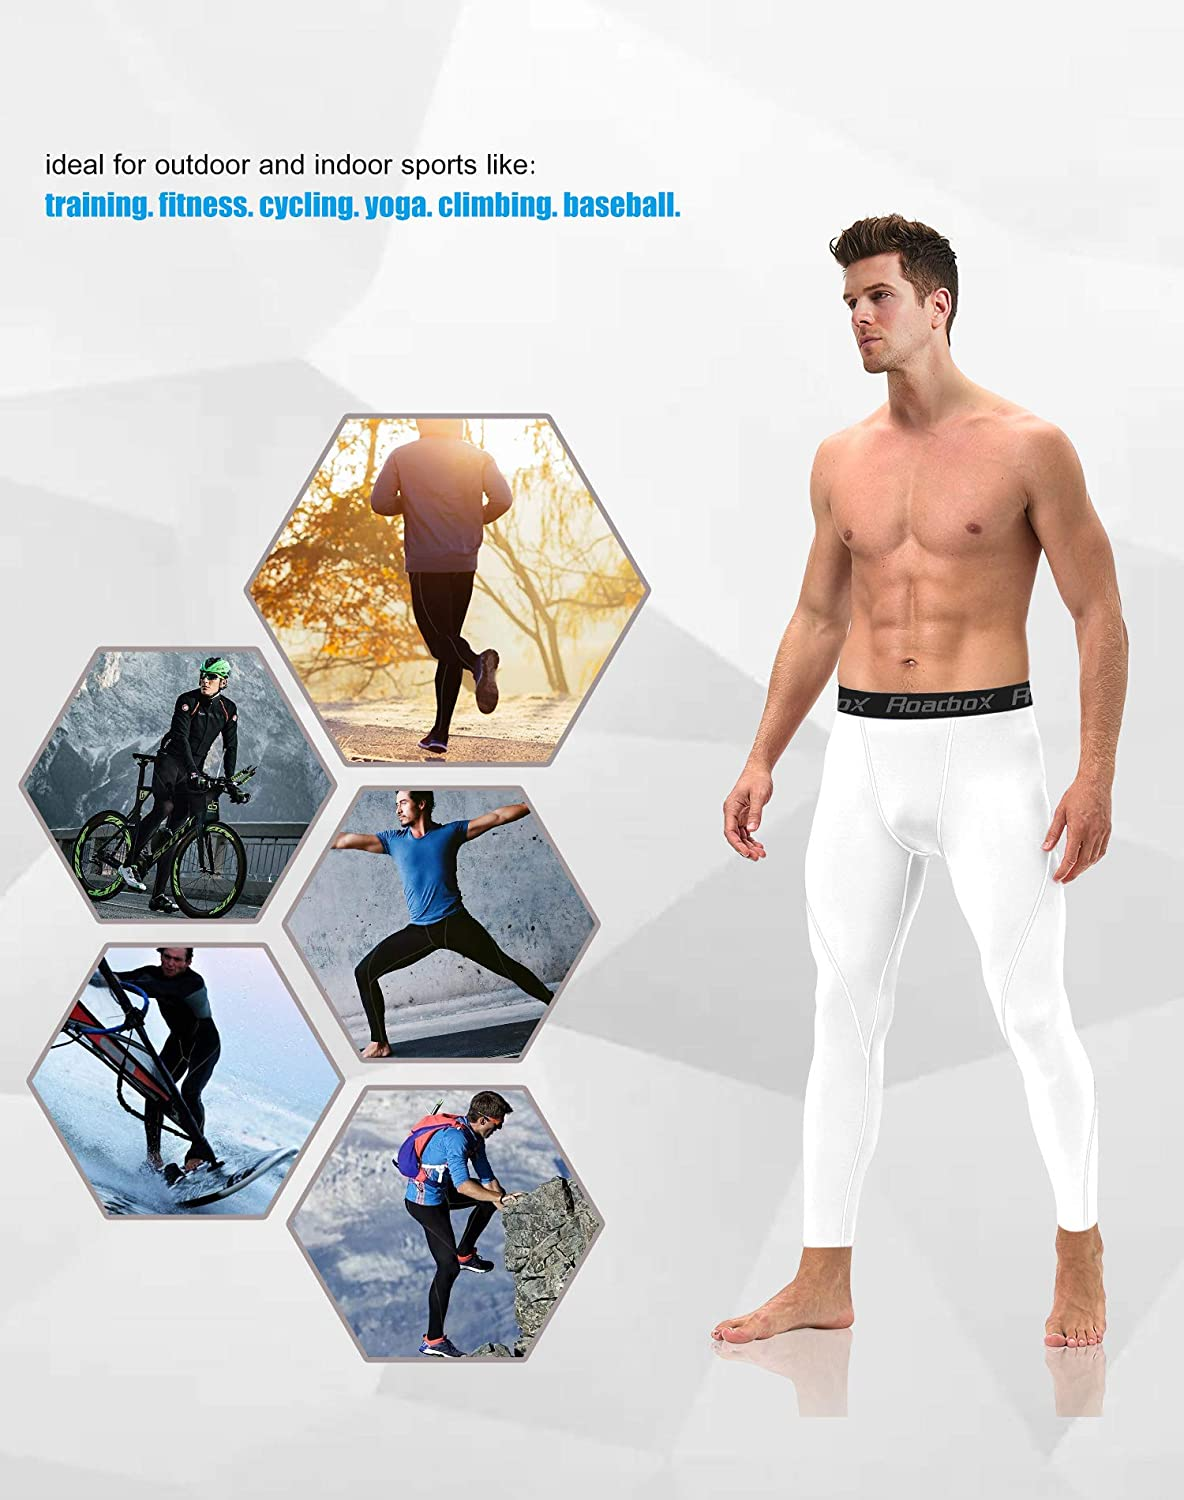 Workout Warm Dry Cool Sports Leggings Tights Baselayer Roadbox Men/'s Compression Pants 2 Pack